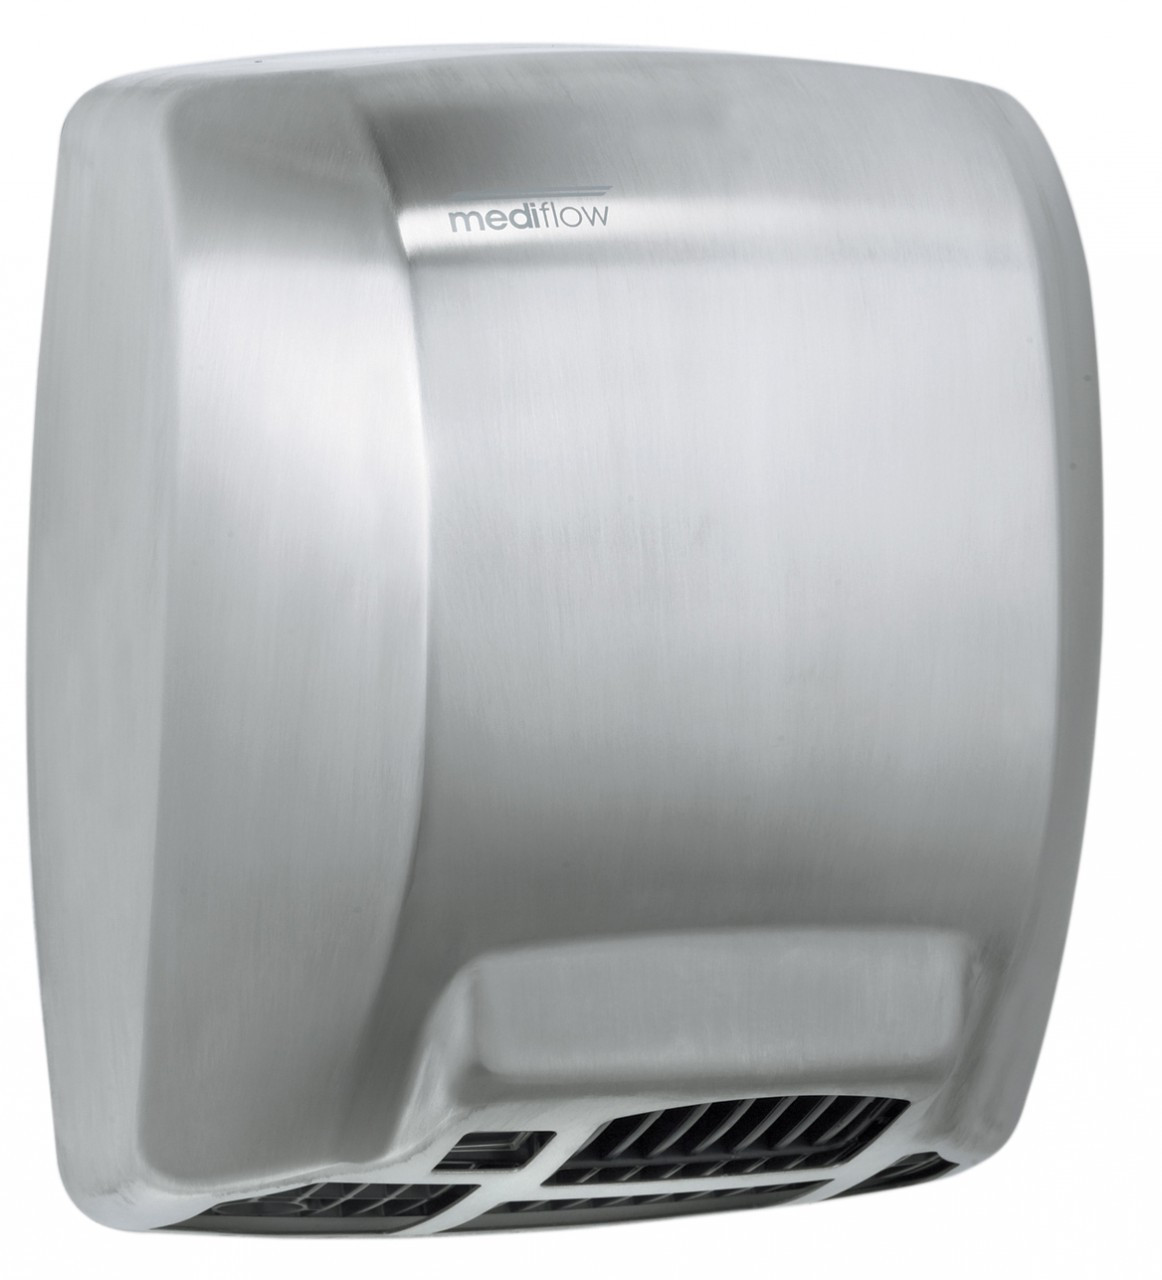 mediflow series m03acs automatic stainless steel satin hand dryer from saniflow basic warm air - Air Hand Dryers